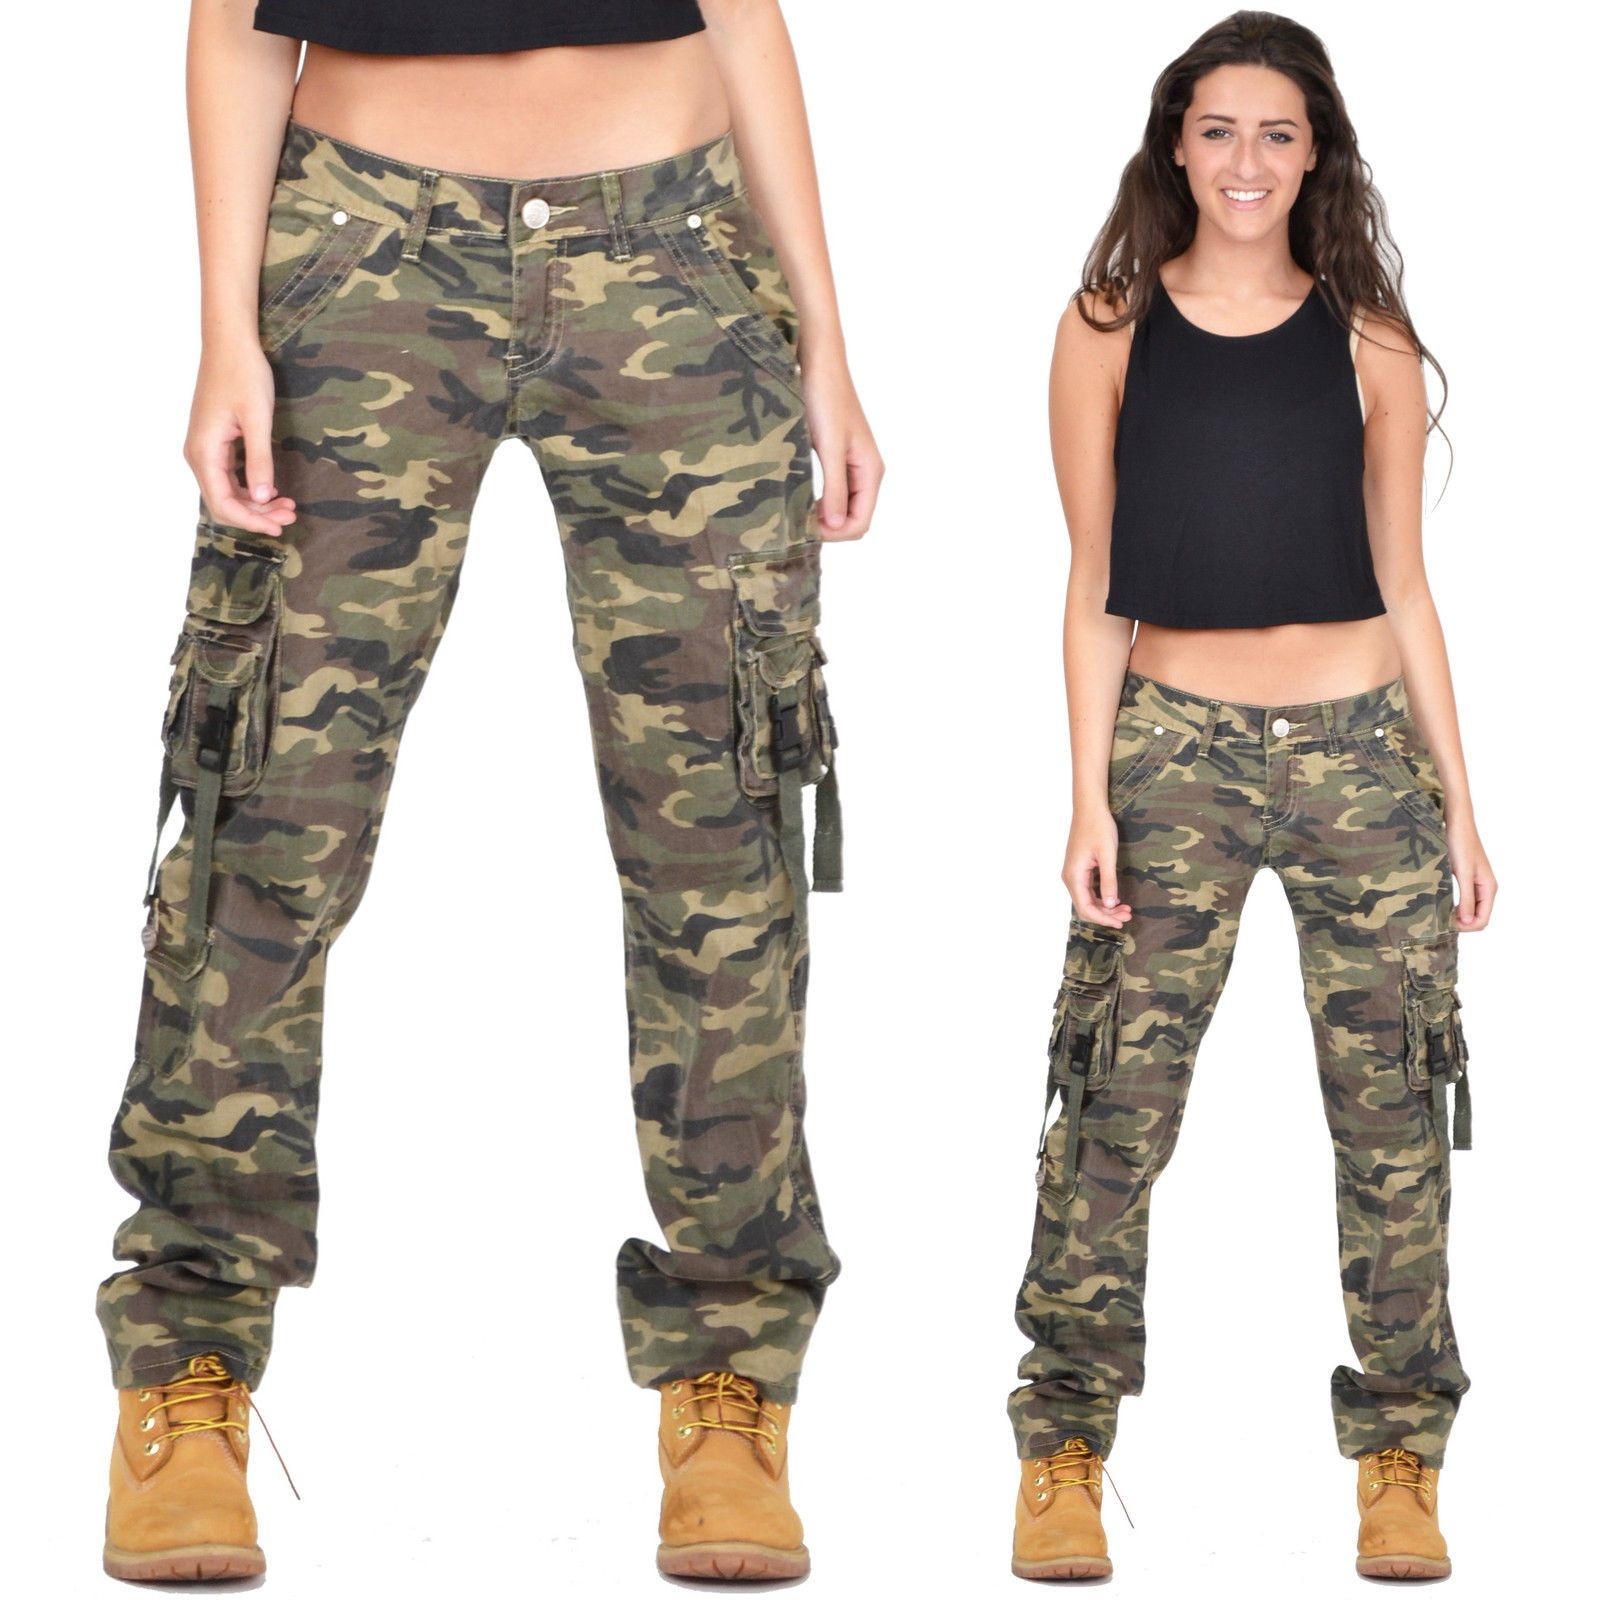 Details about Ladies Womens Army Military Green Camouflage Cargo ...